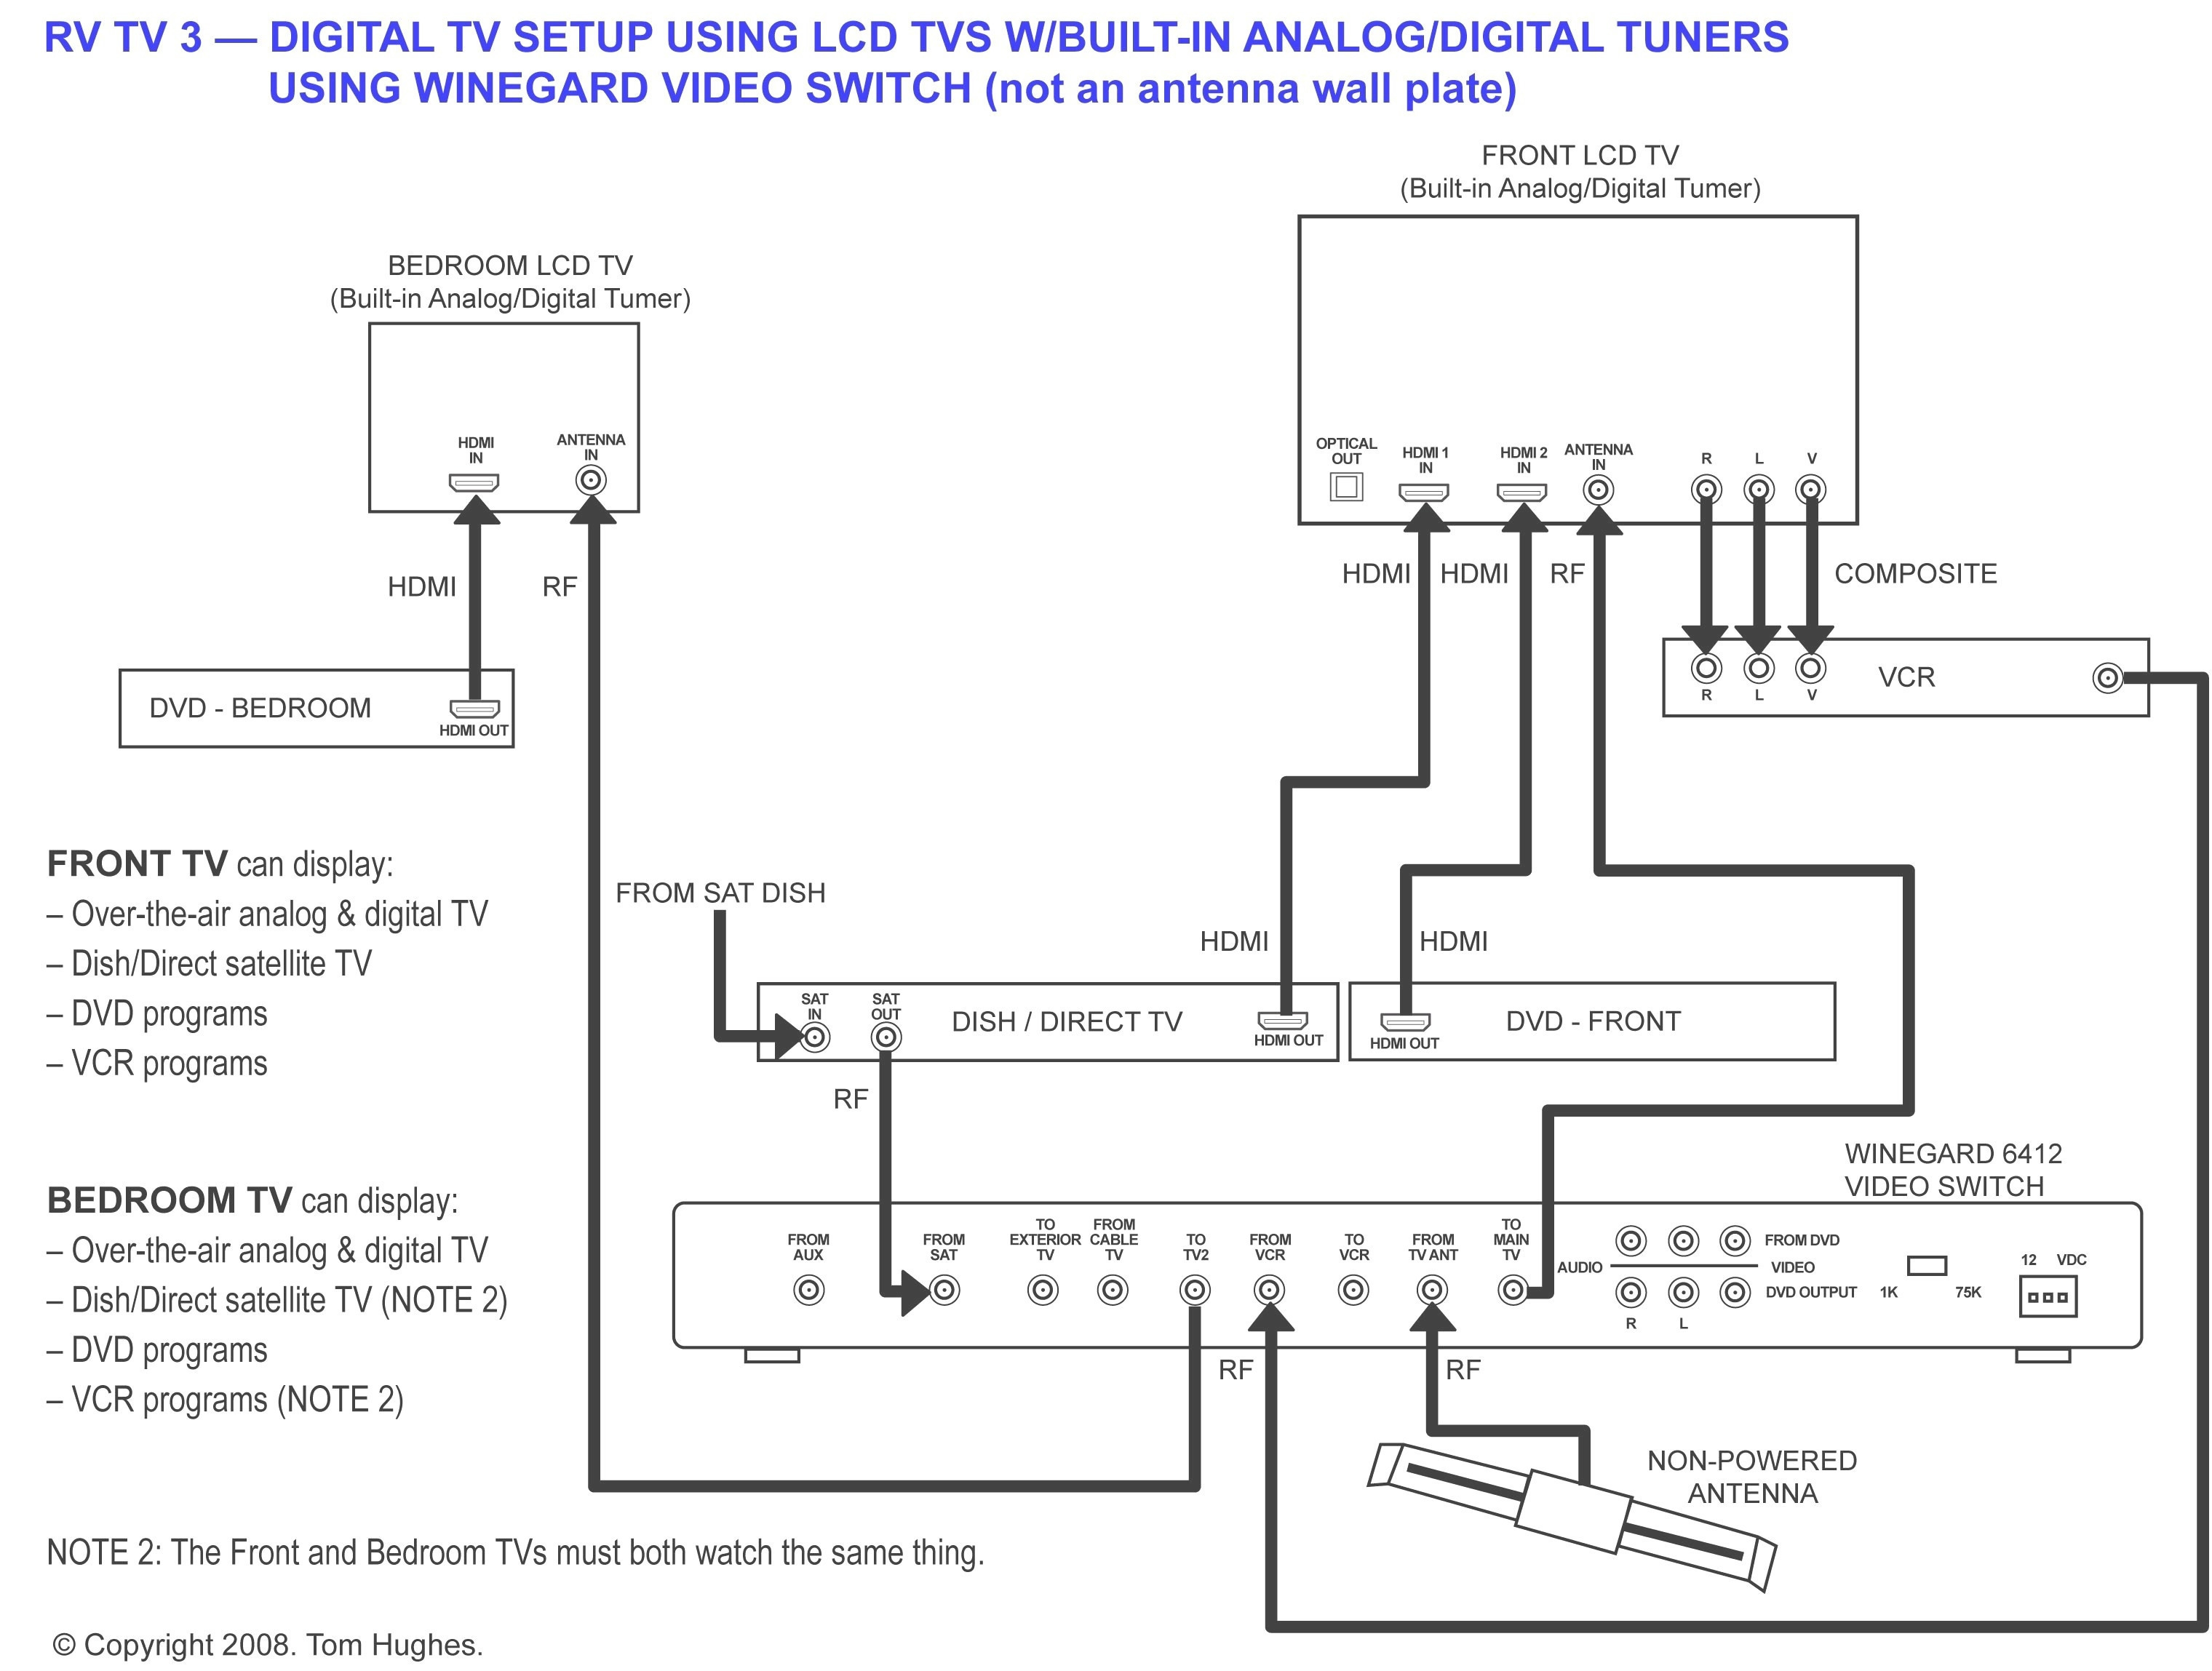 solar wiring diagram Download-Solar System Wiring Diagram Sample Pdf Wiring Diagram For Trailer Valid Http Wikidiyfaqorguk 0 0d 2-d